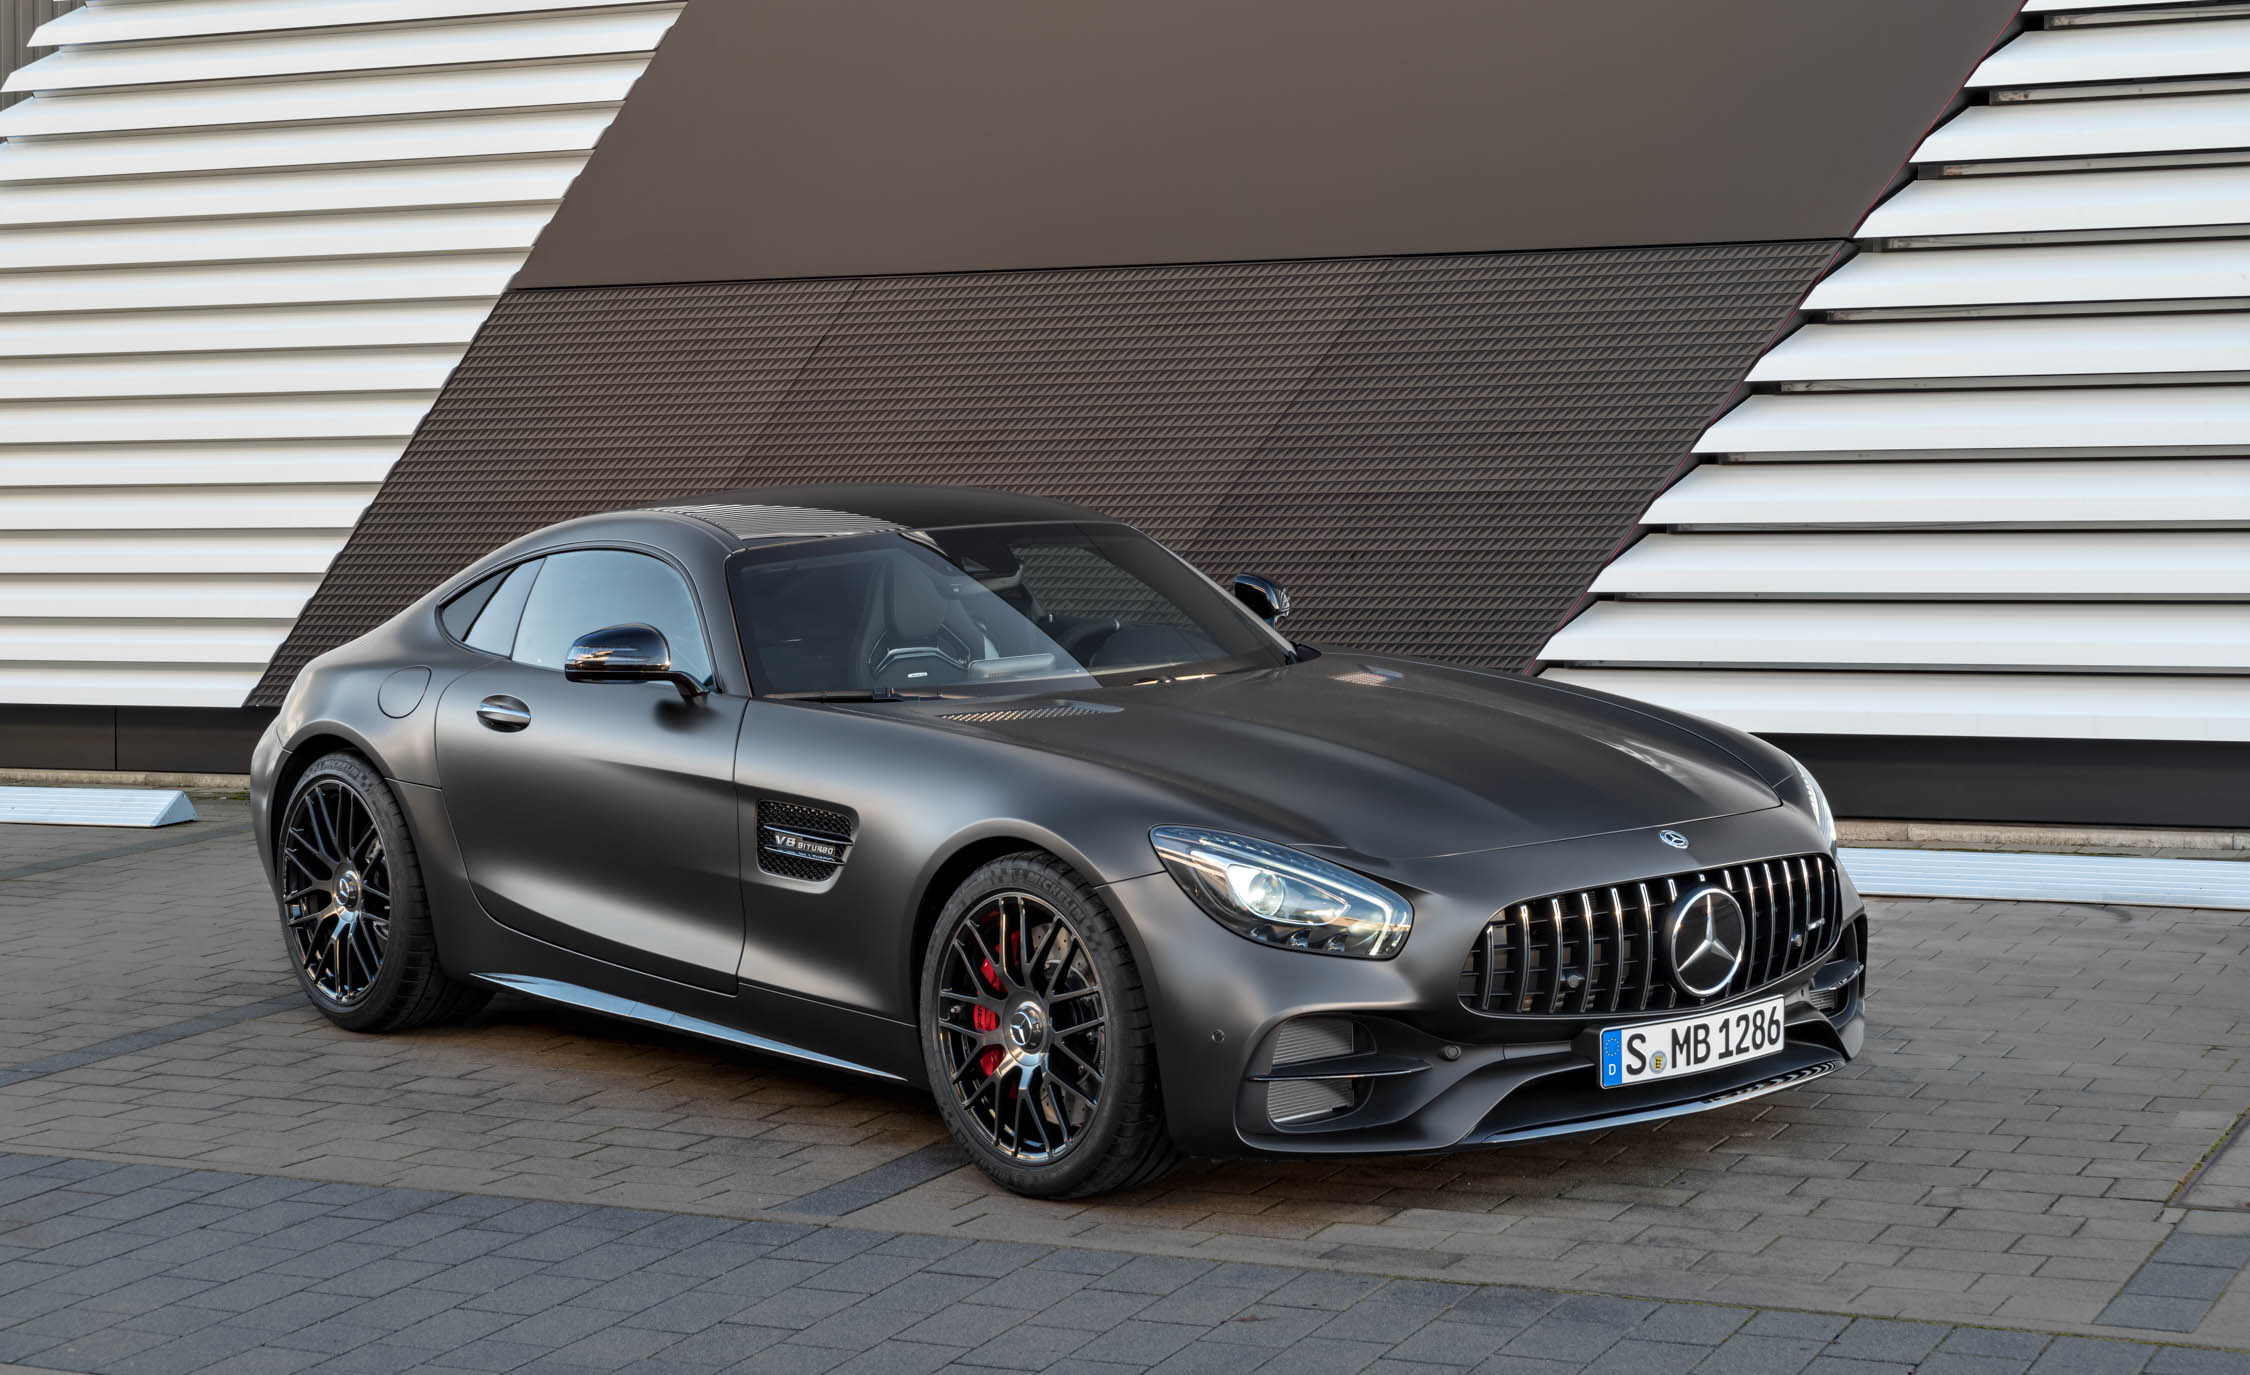 2018 Mercedes Amg Gt C Exterior (View 11 of 23)